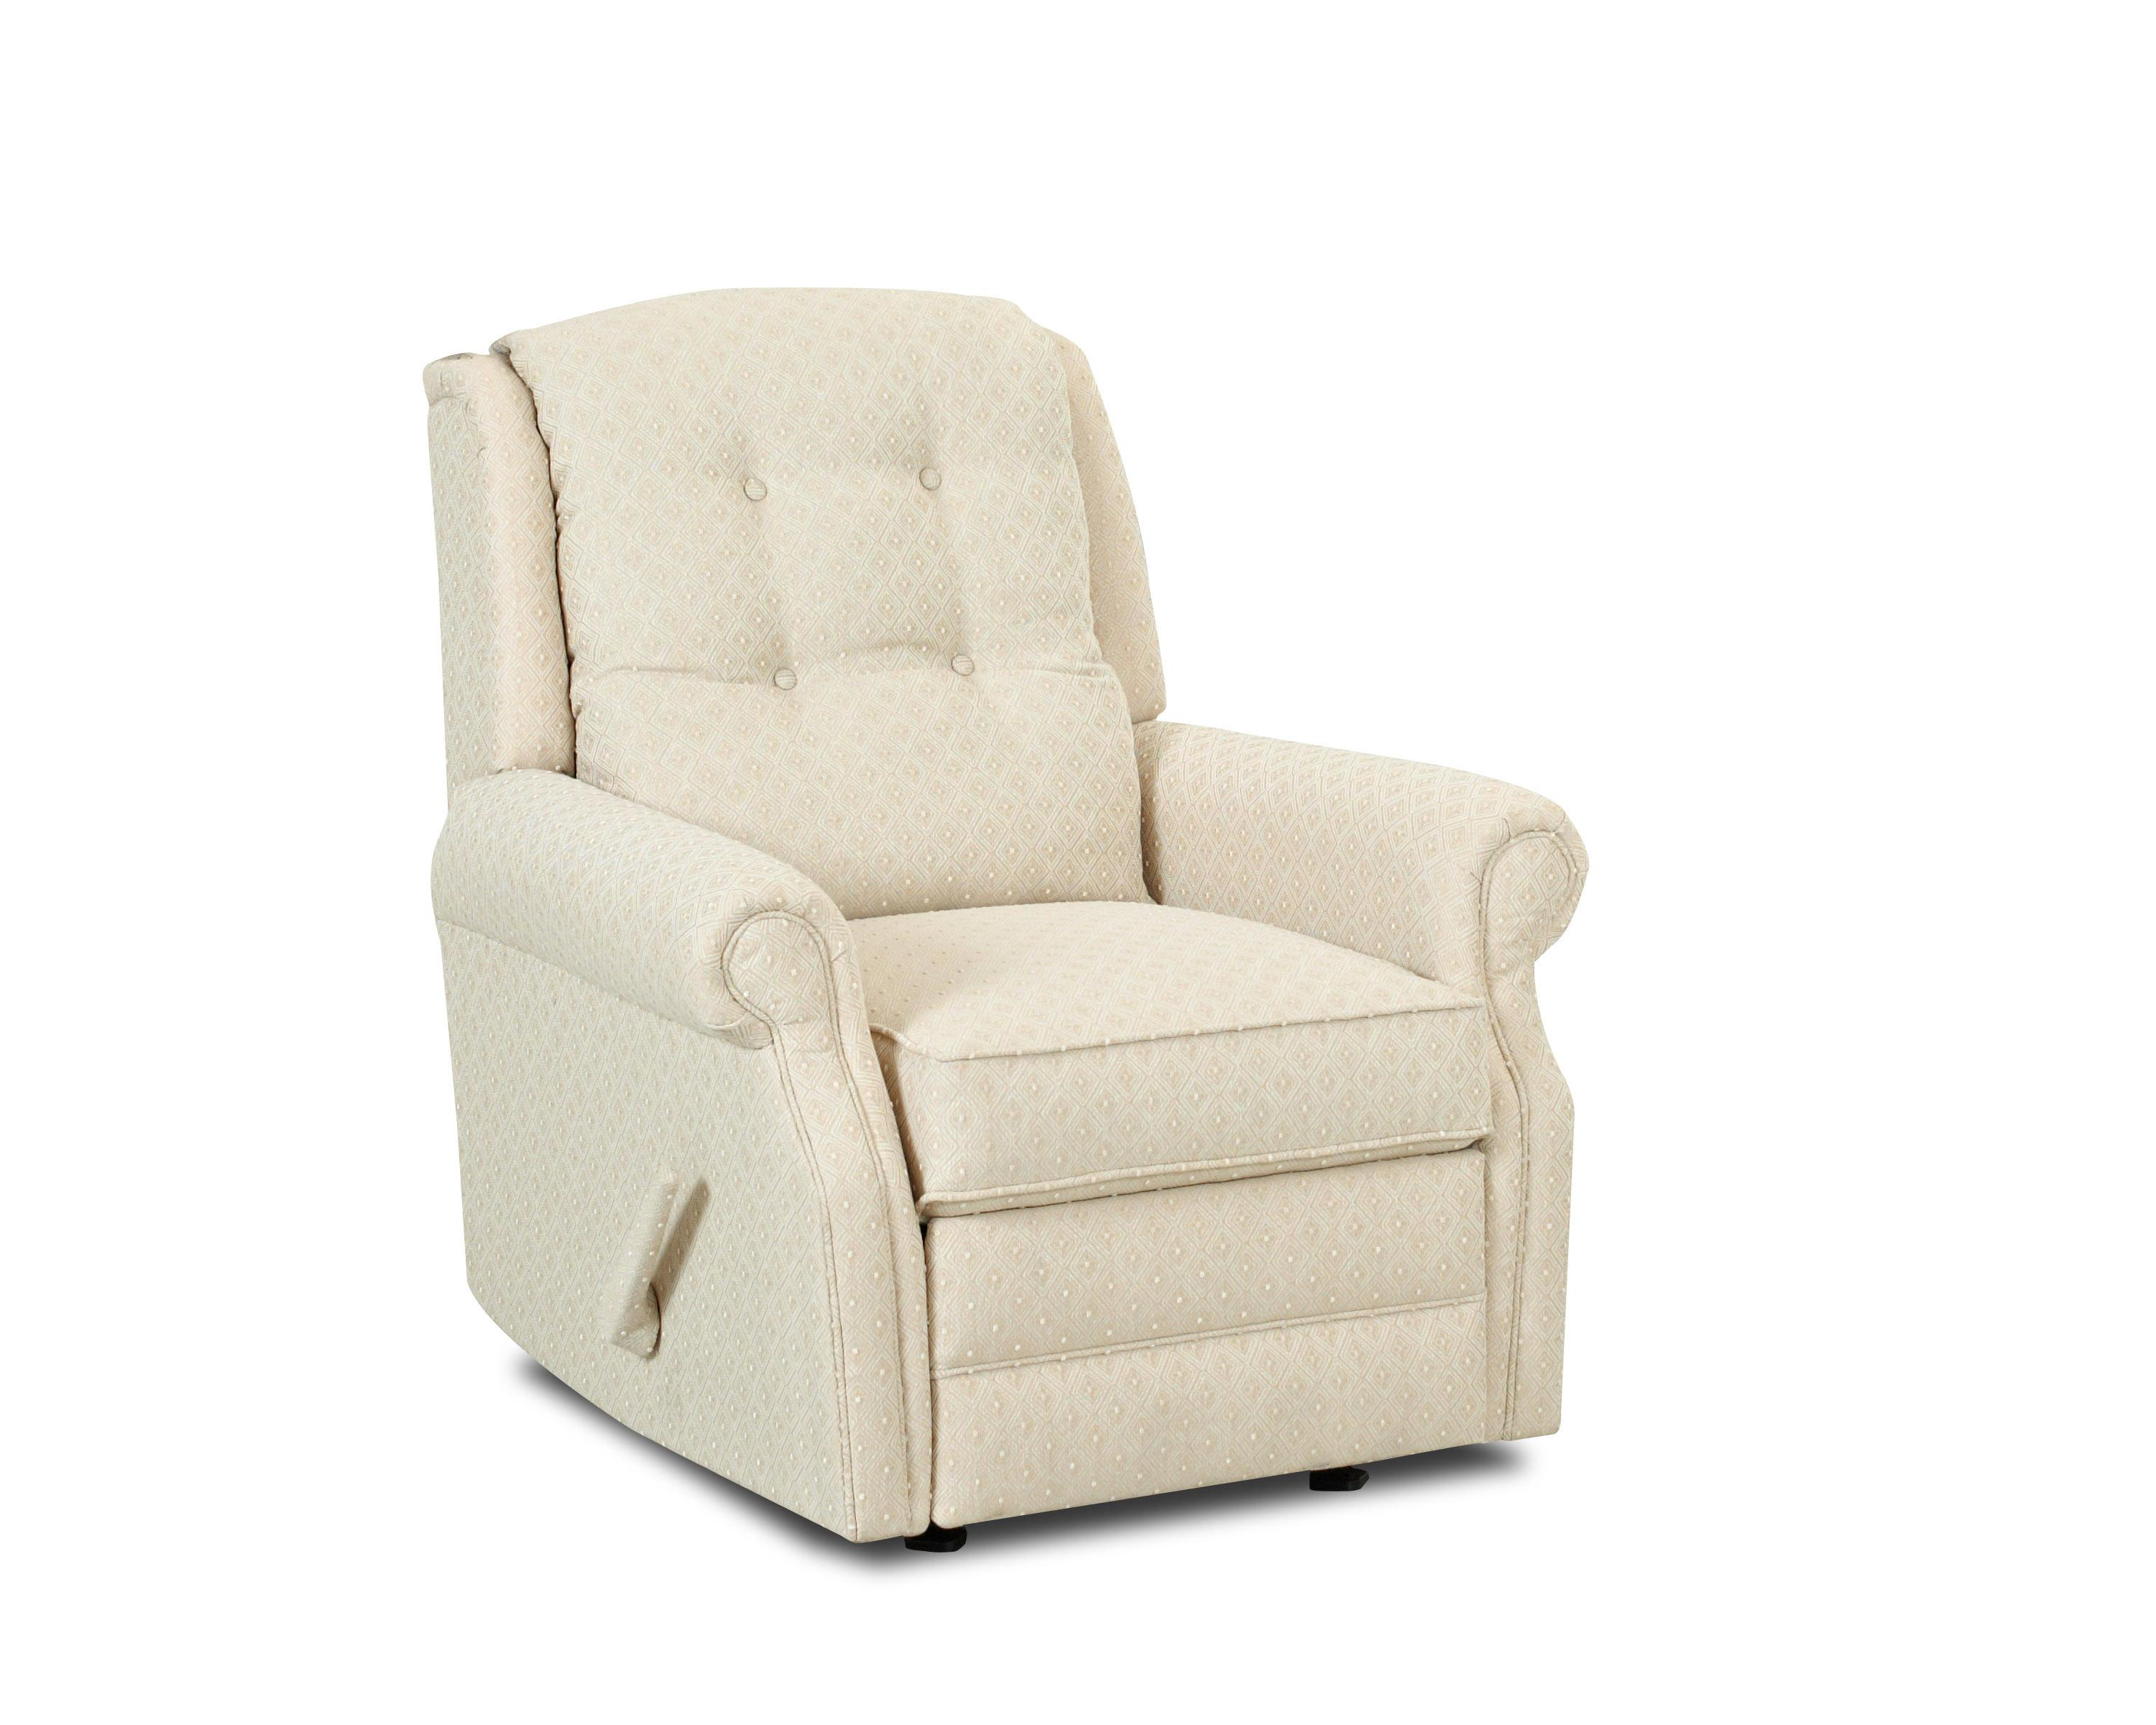 Transitional Manual Swivel Rocking Reclining Chair with Button Tufting  sc 1 st  Wolf Furniture : upholstered reclining chairs - islam-shia.org